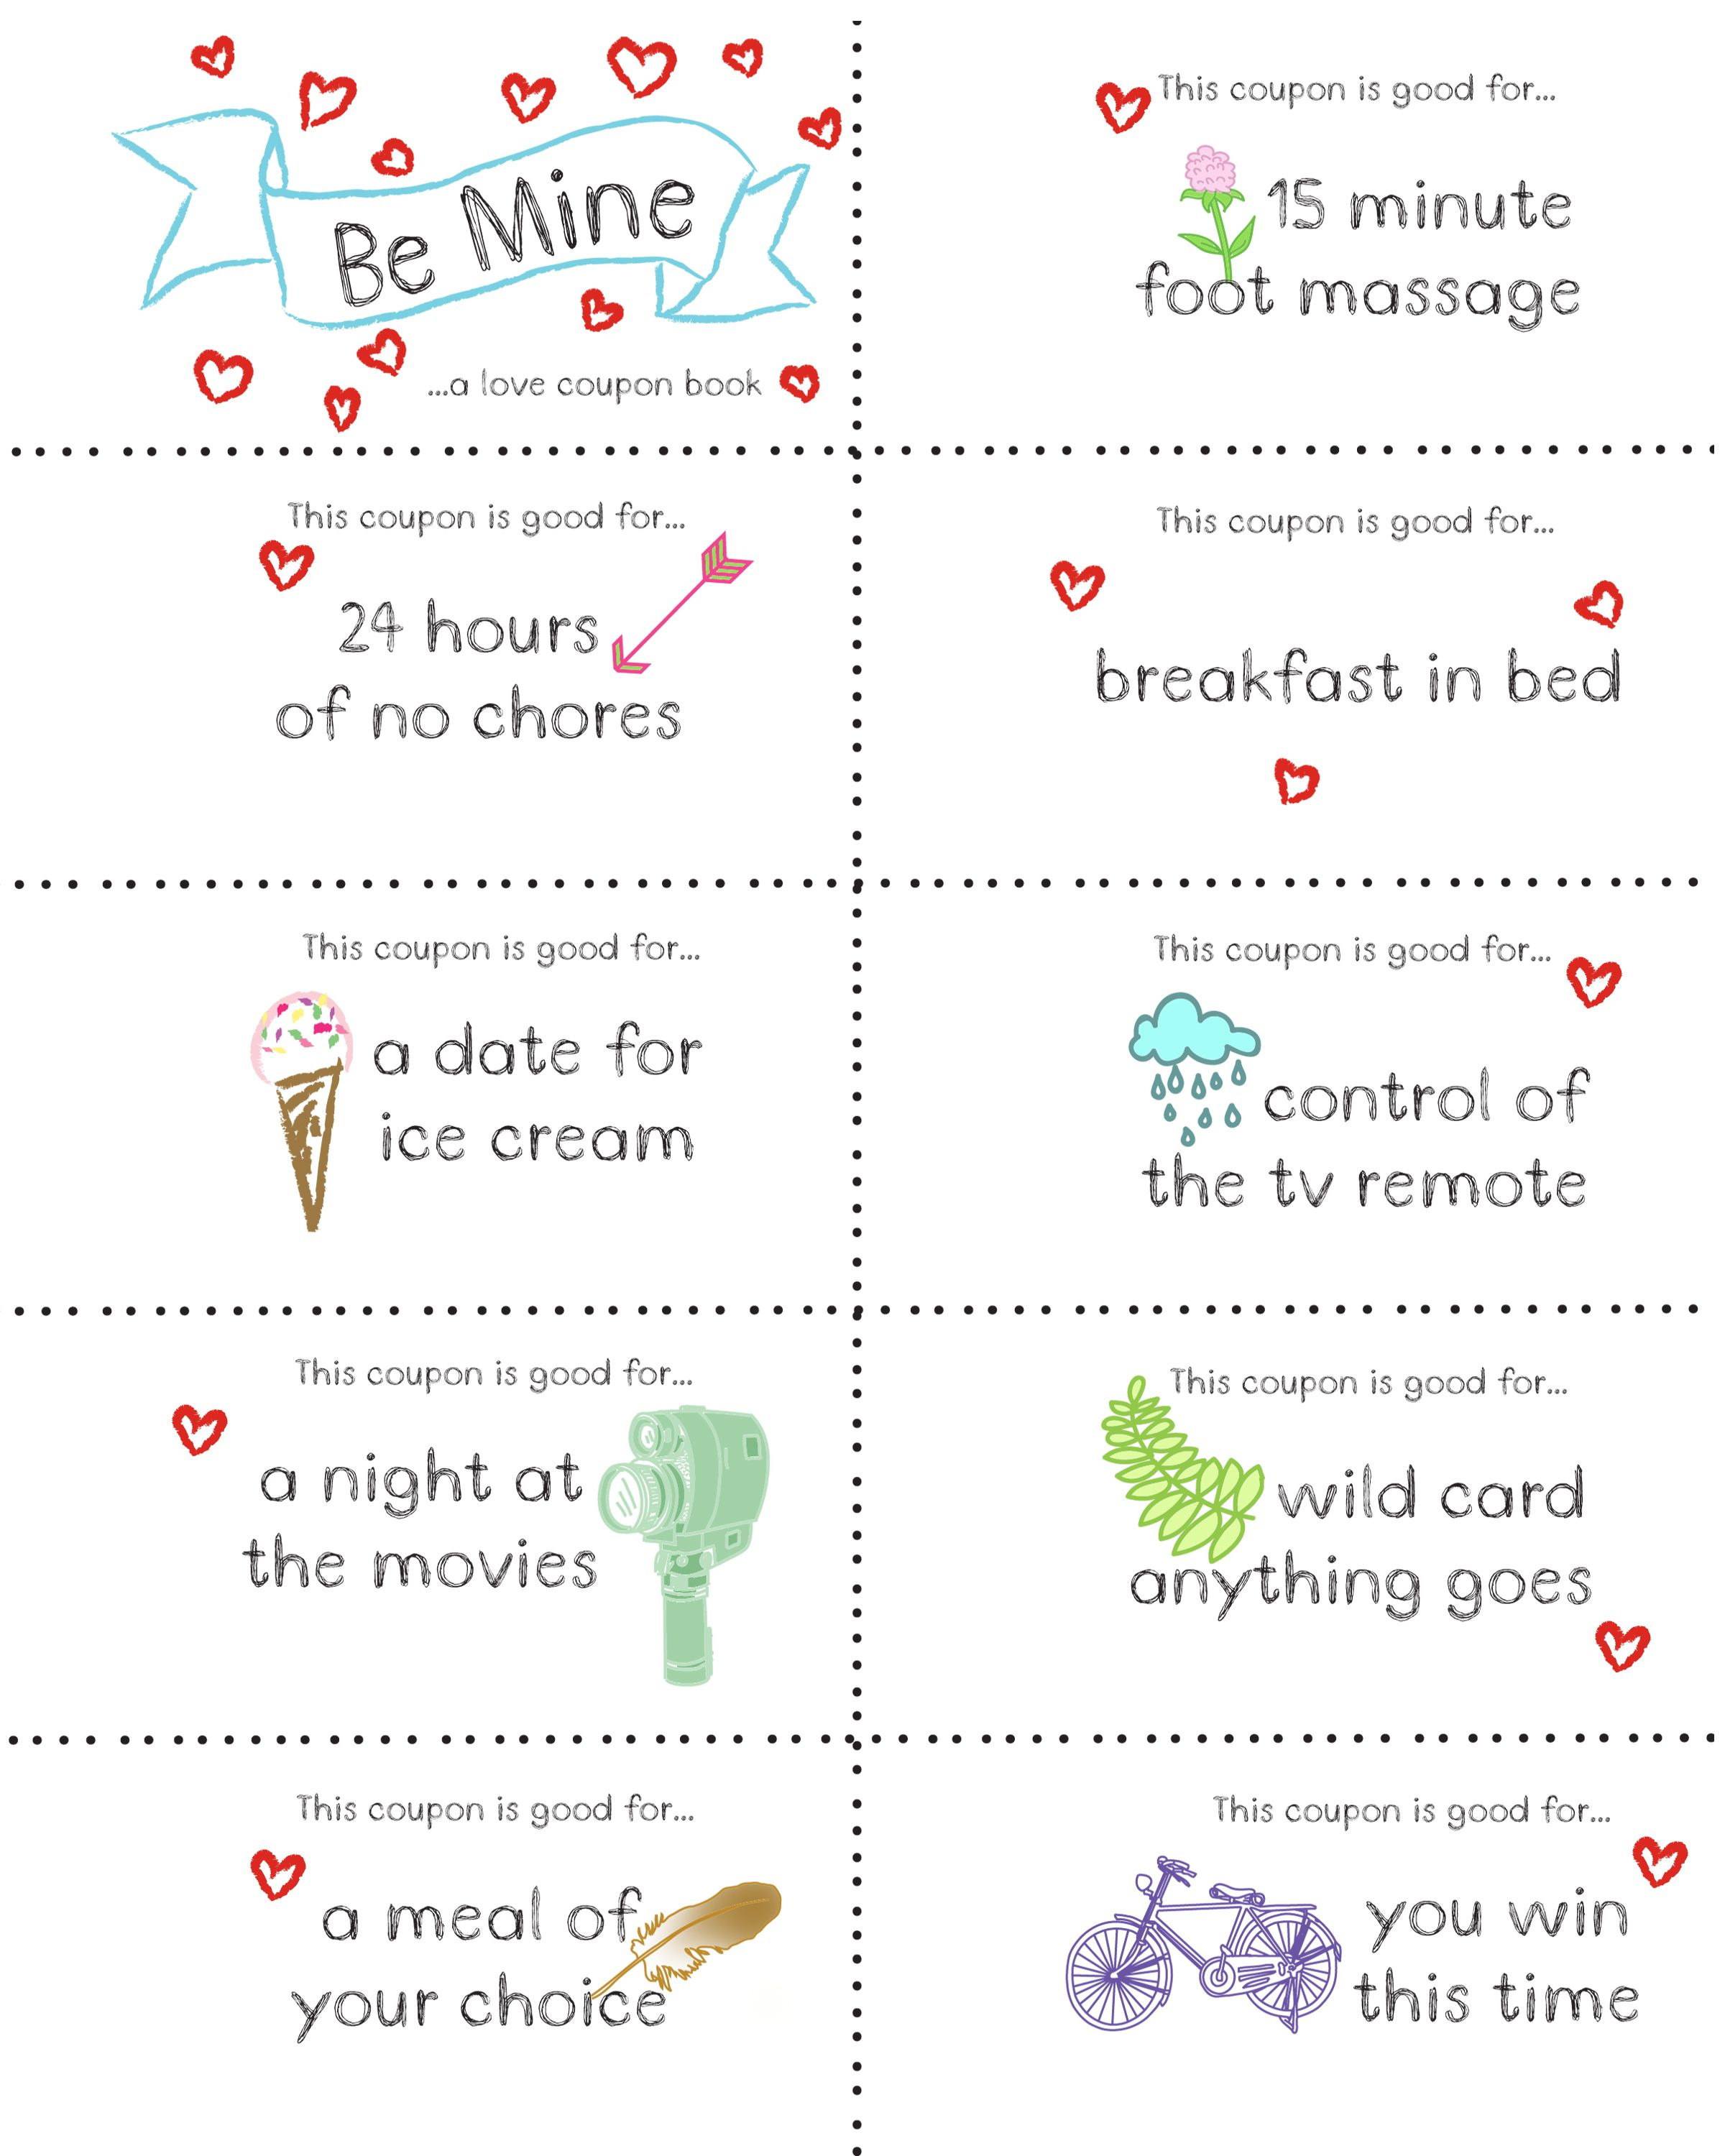 Last Minute Valentine Free Coupon Book Printable | Coupons, Books ...